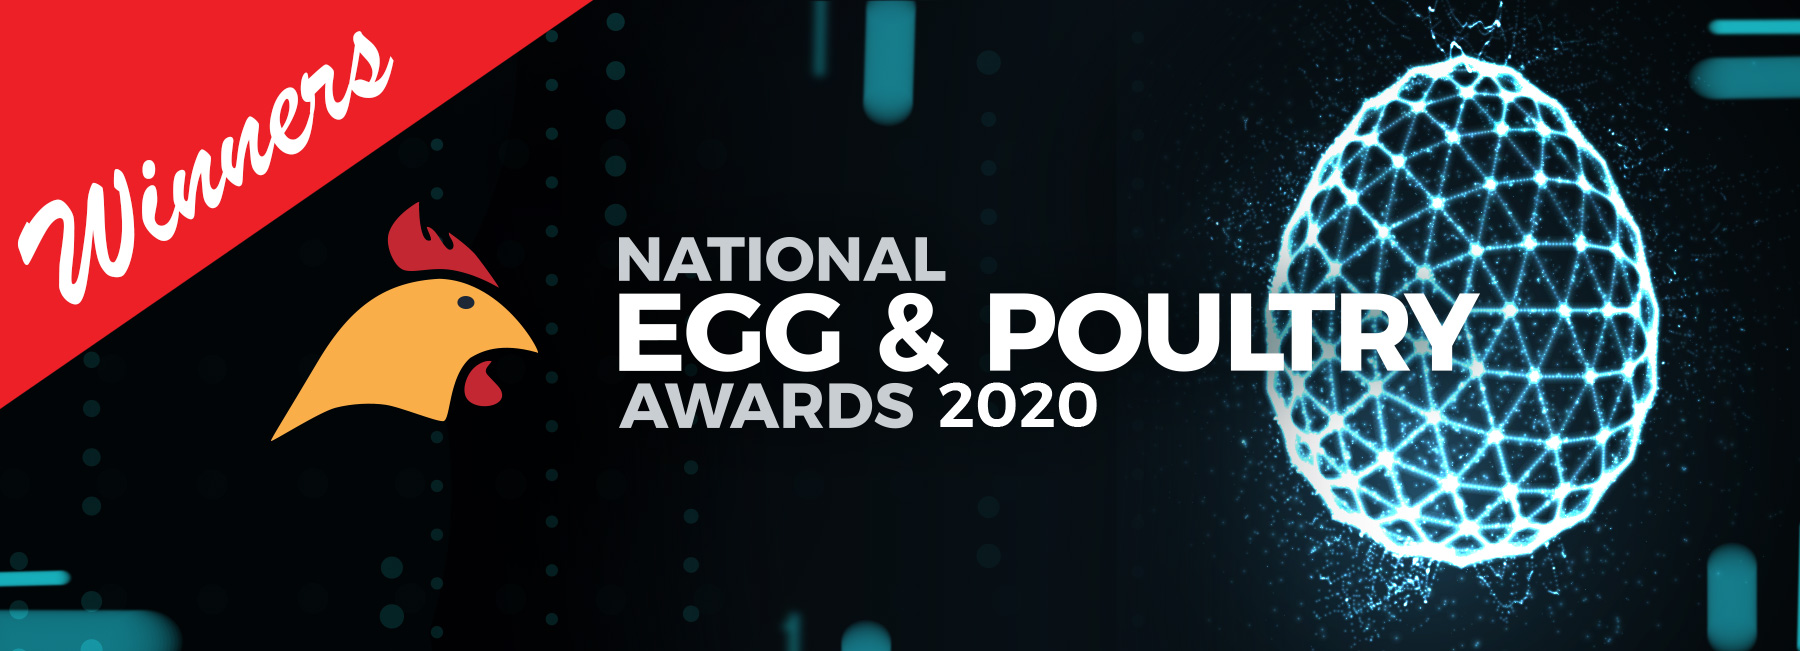 National Egg & Poultry Awards 2020 – The Results Are In!